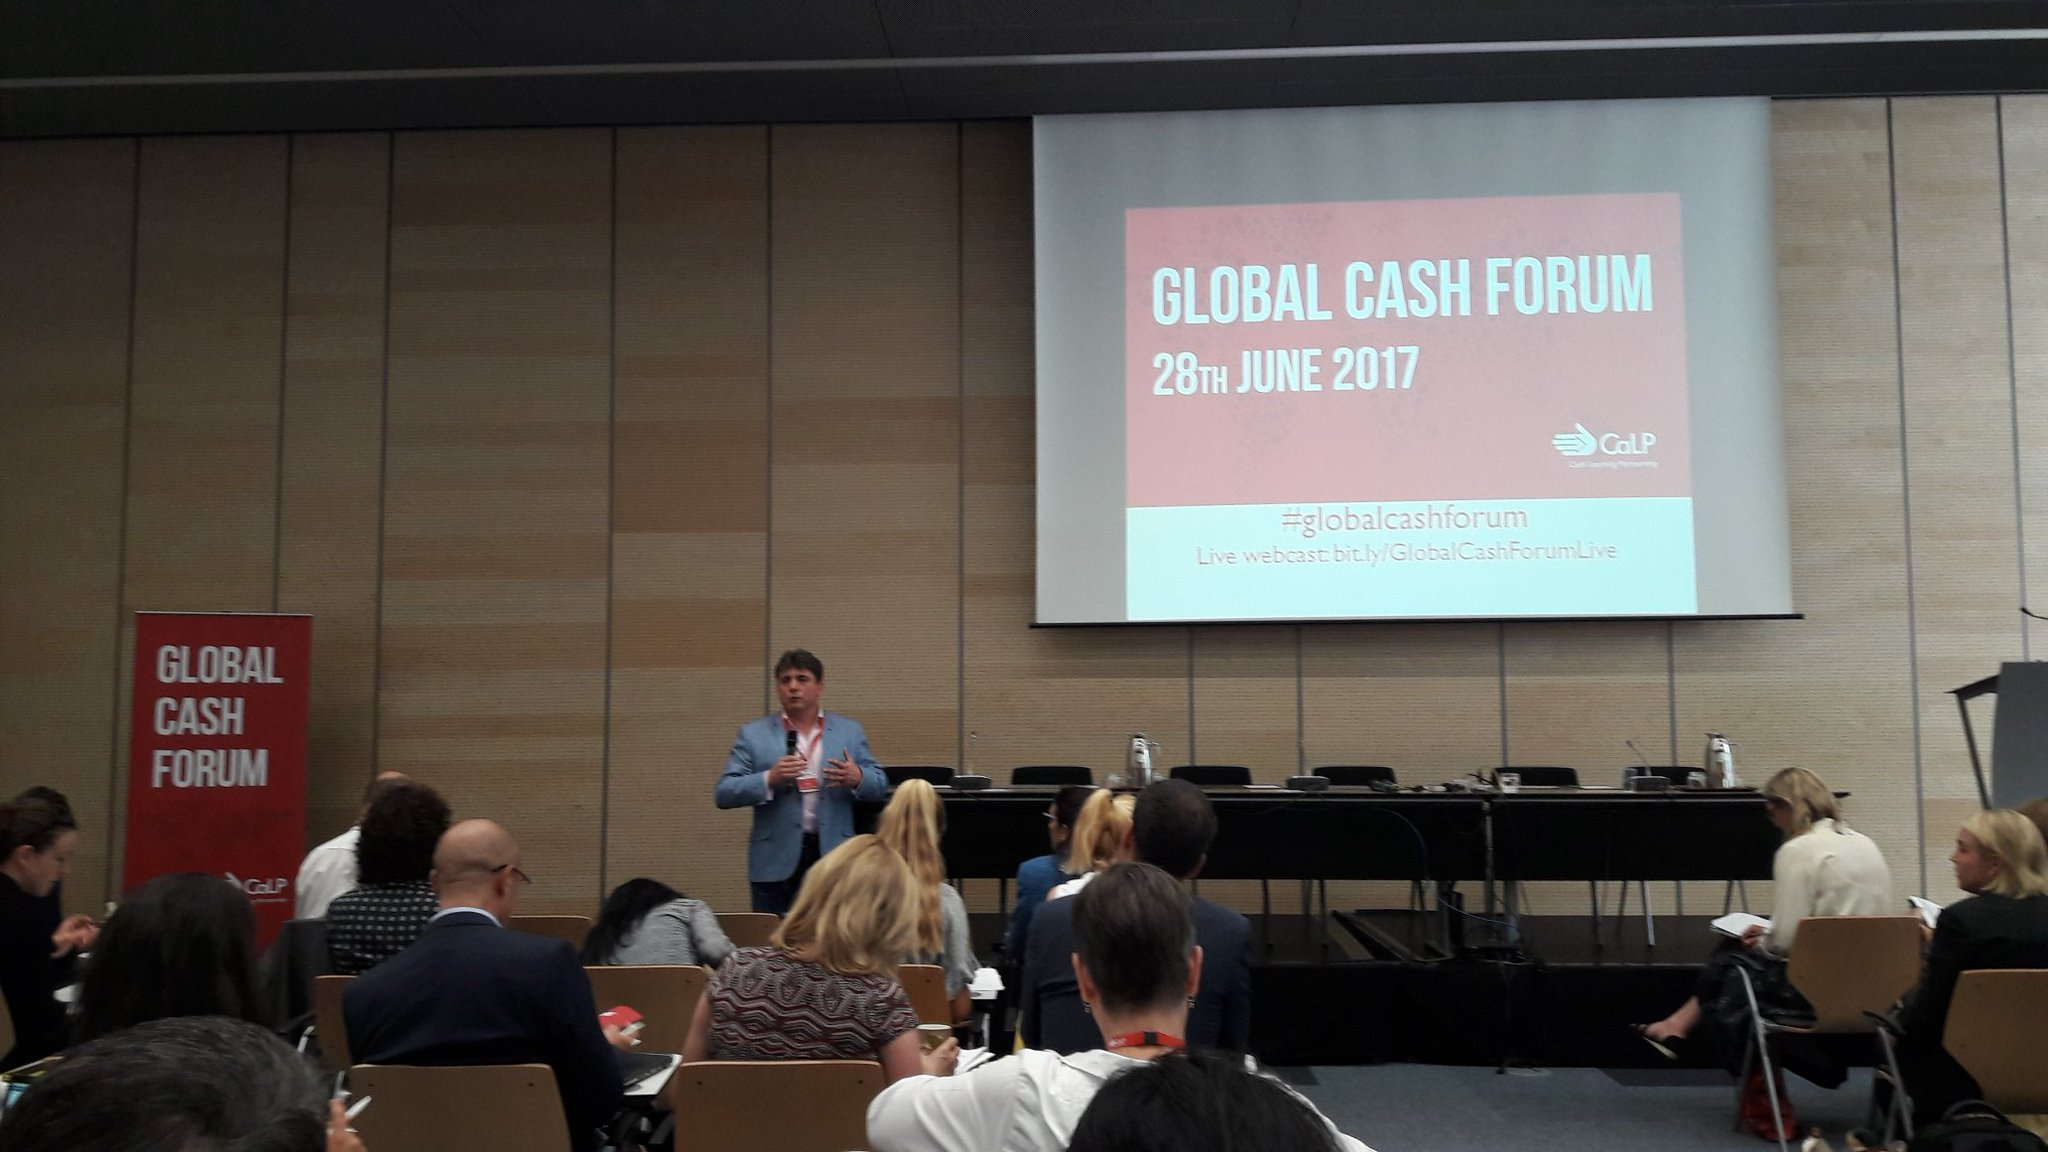 """Opening remarks by @nigelstimmins #GlobalCashForum @cashlearning """"how do we help affected people in the most appropriate way?"""" https://t.co/eHr0KaIxxo"""